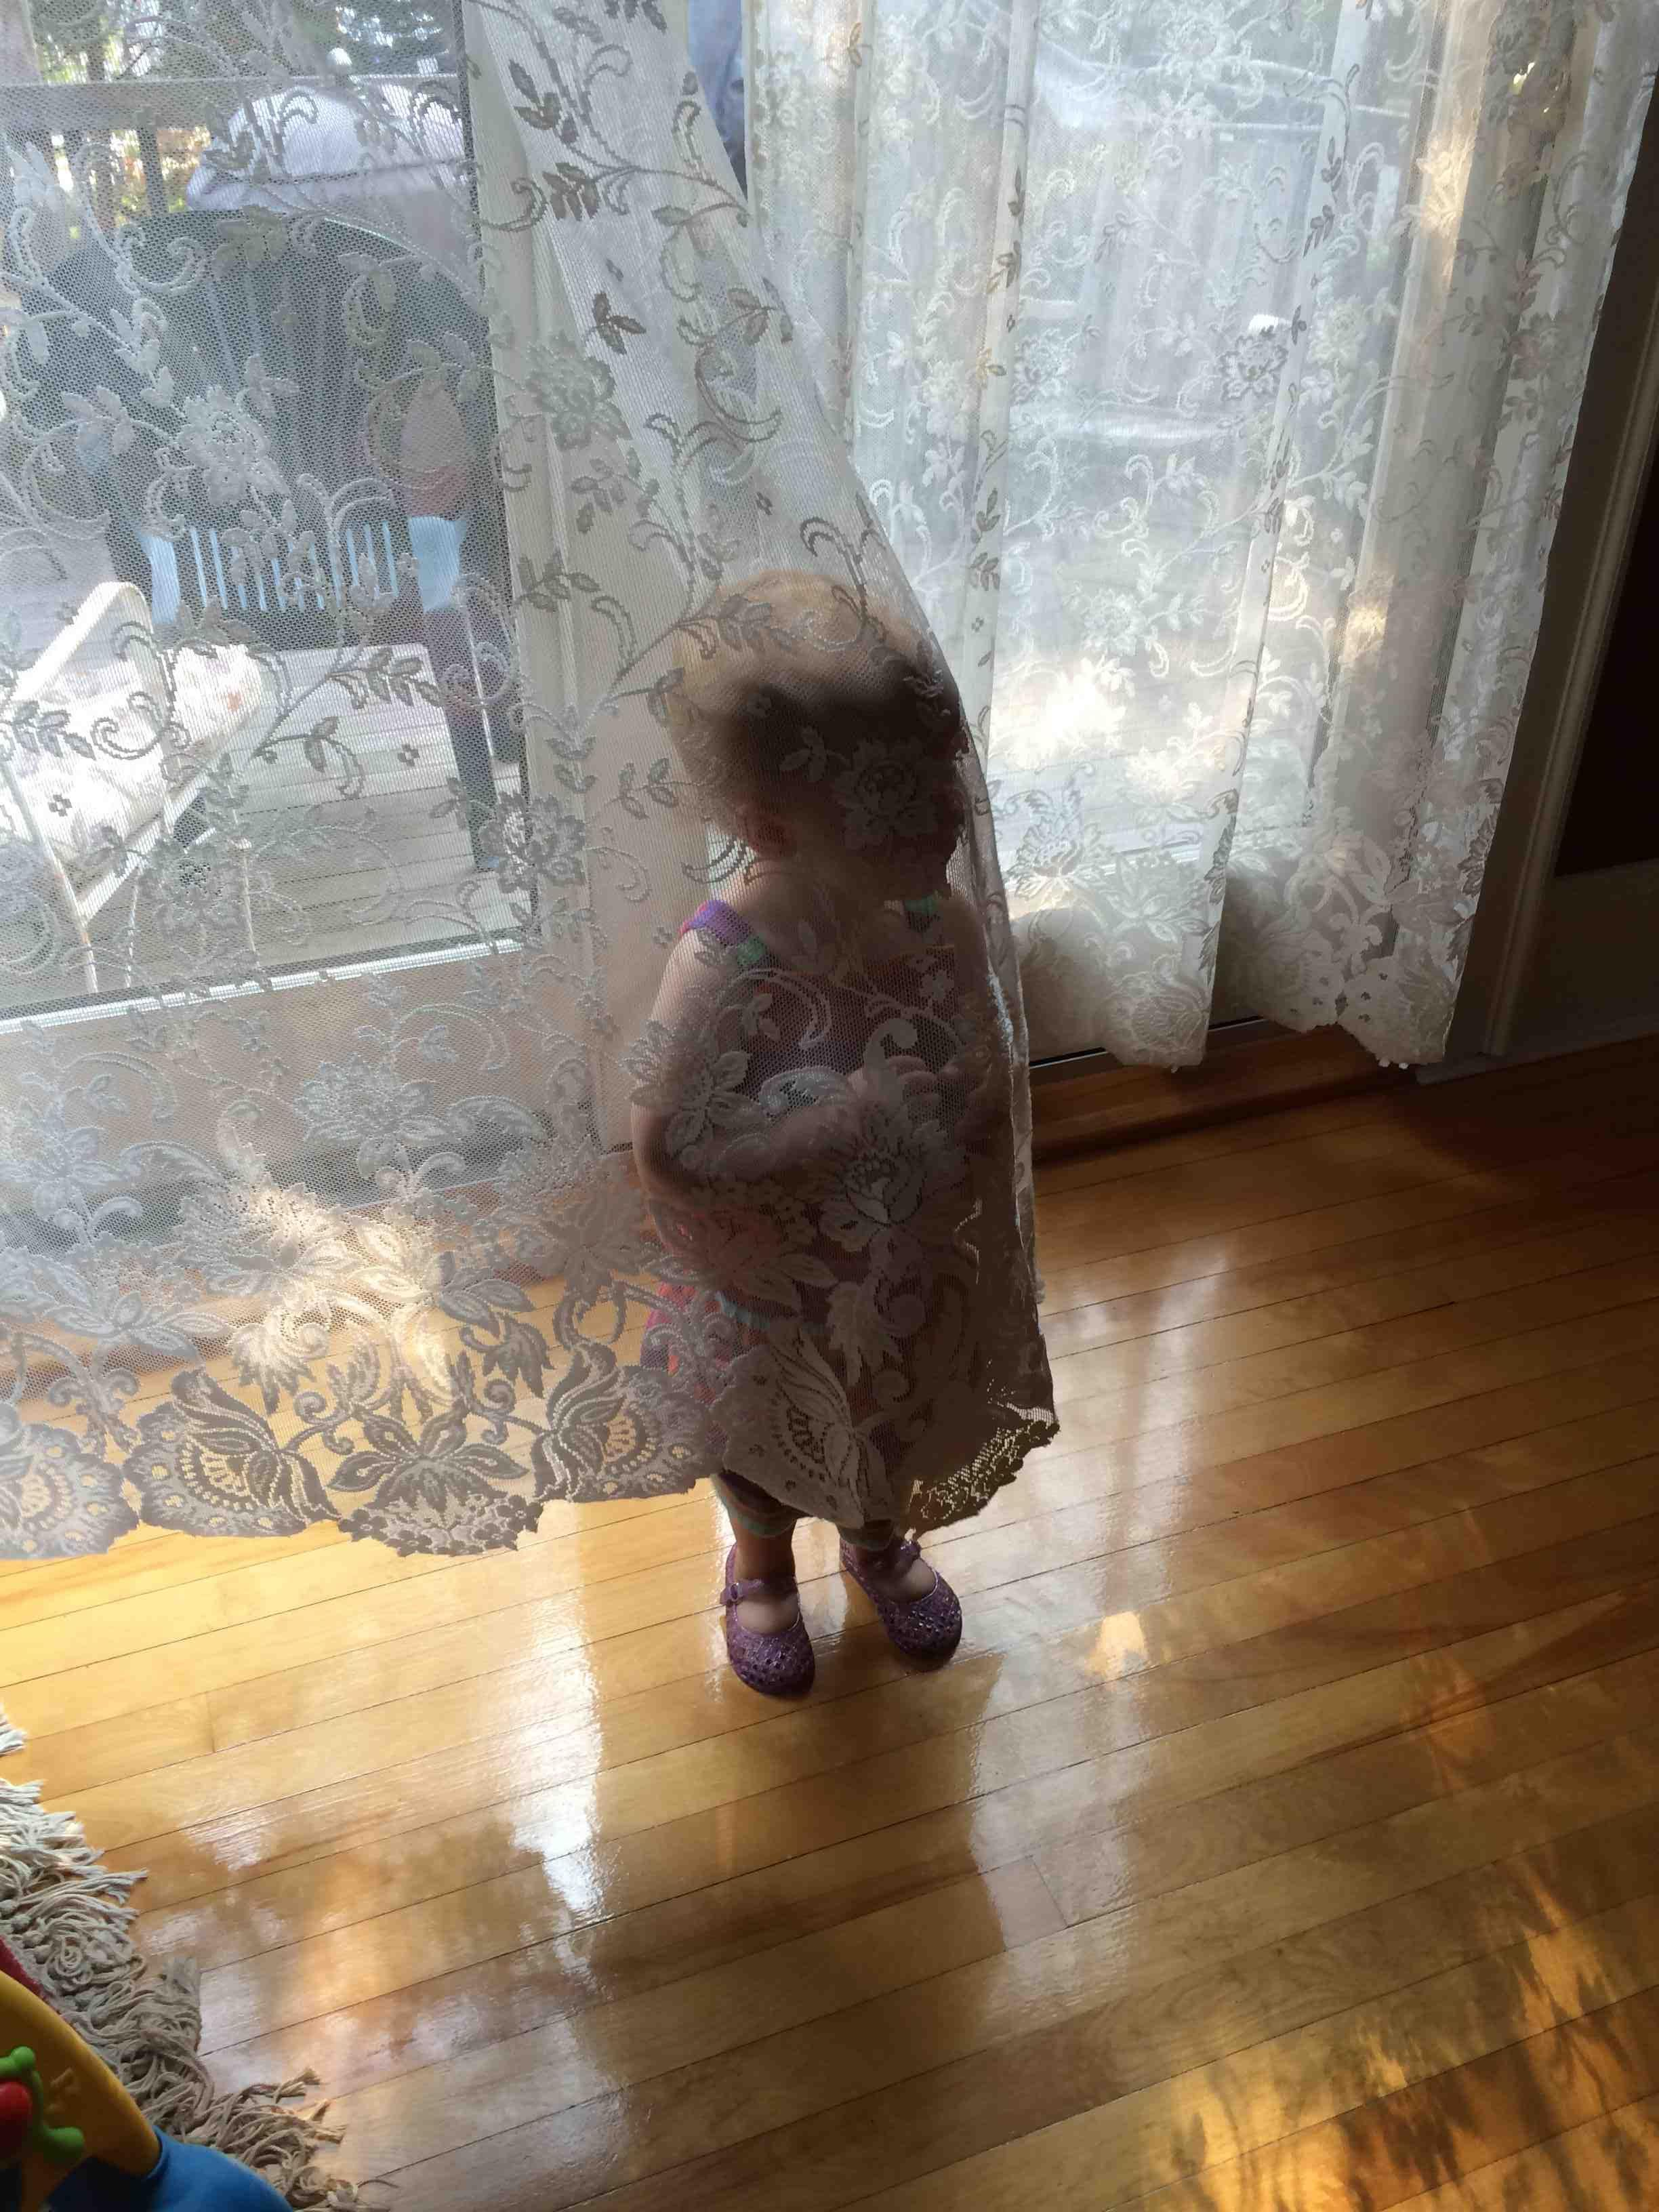 21 Hilarious Photos of Children Who are Terrible at Hide and Seek 21 Hilarious Photos of Children Who are Terrible at Hide and Seek new foto